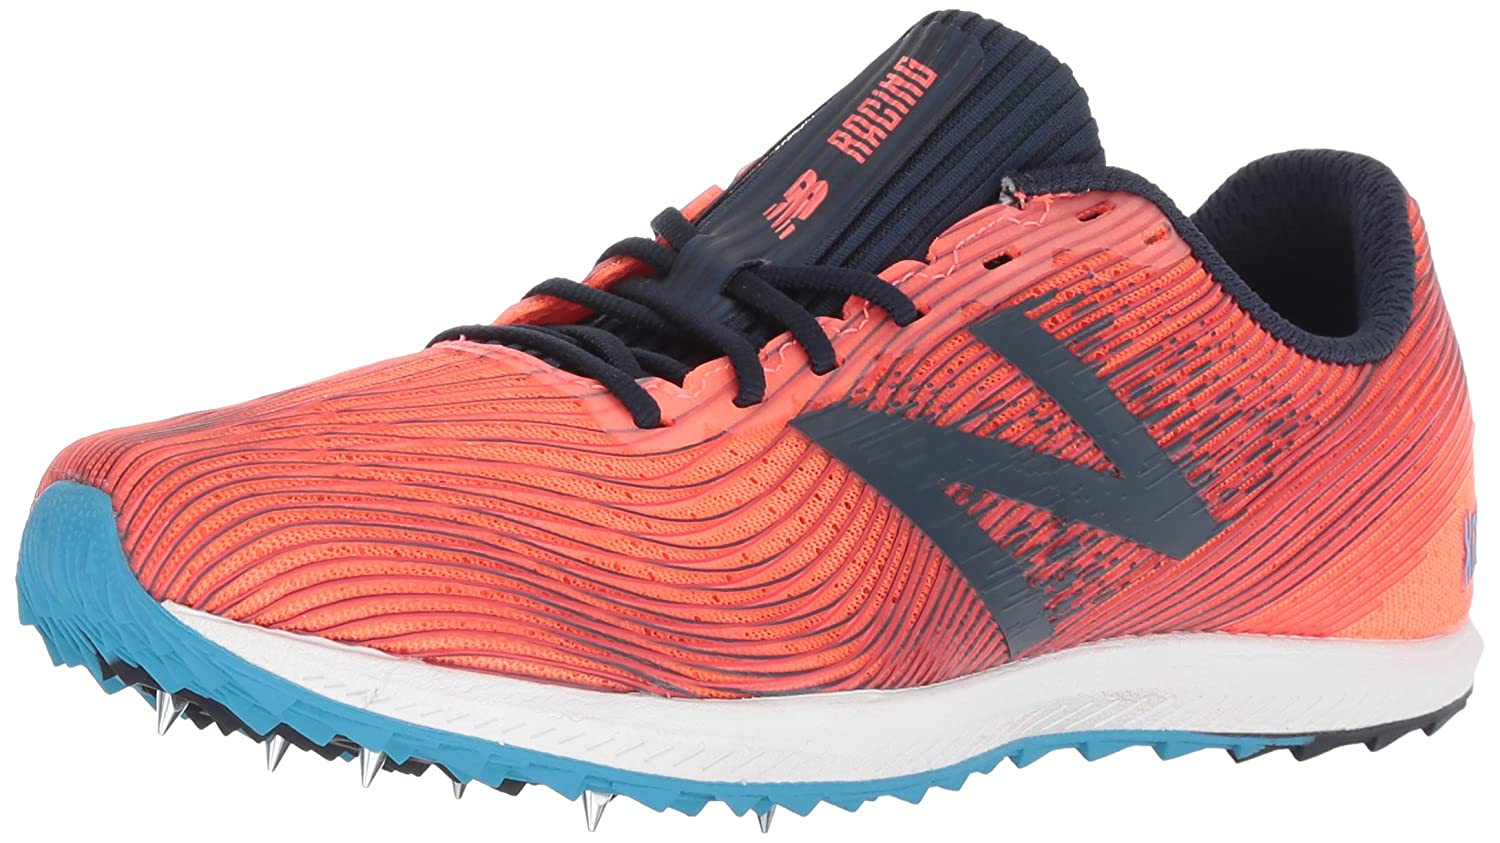 TALLA 36 EU. New Balance Country Spike, Zapatillas de Cross para Mujer